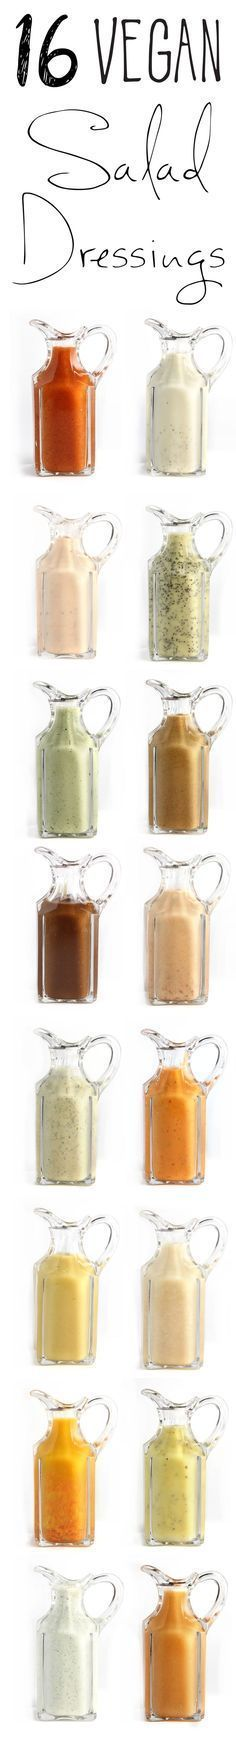 """16 Vegan Salad Dressings!! All the classics made vegan, plus a few more great ideas. <a class=""""pintag searchlink"""" data-query=""""%23itdoesnttastelikechicken"""" data-type=""""hashtag"""" href=""""/search/?q=%23itdoesnttastelikechicken&rs=hashtag"""" rel=""""nofollow"""" title=""""#itdoesnttastelikechicken search Pinterest"""">#itdoesnttastelikechicken</a>"""